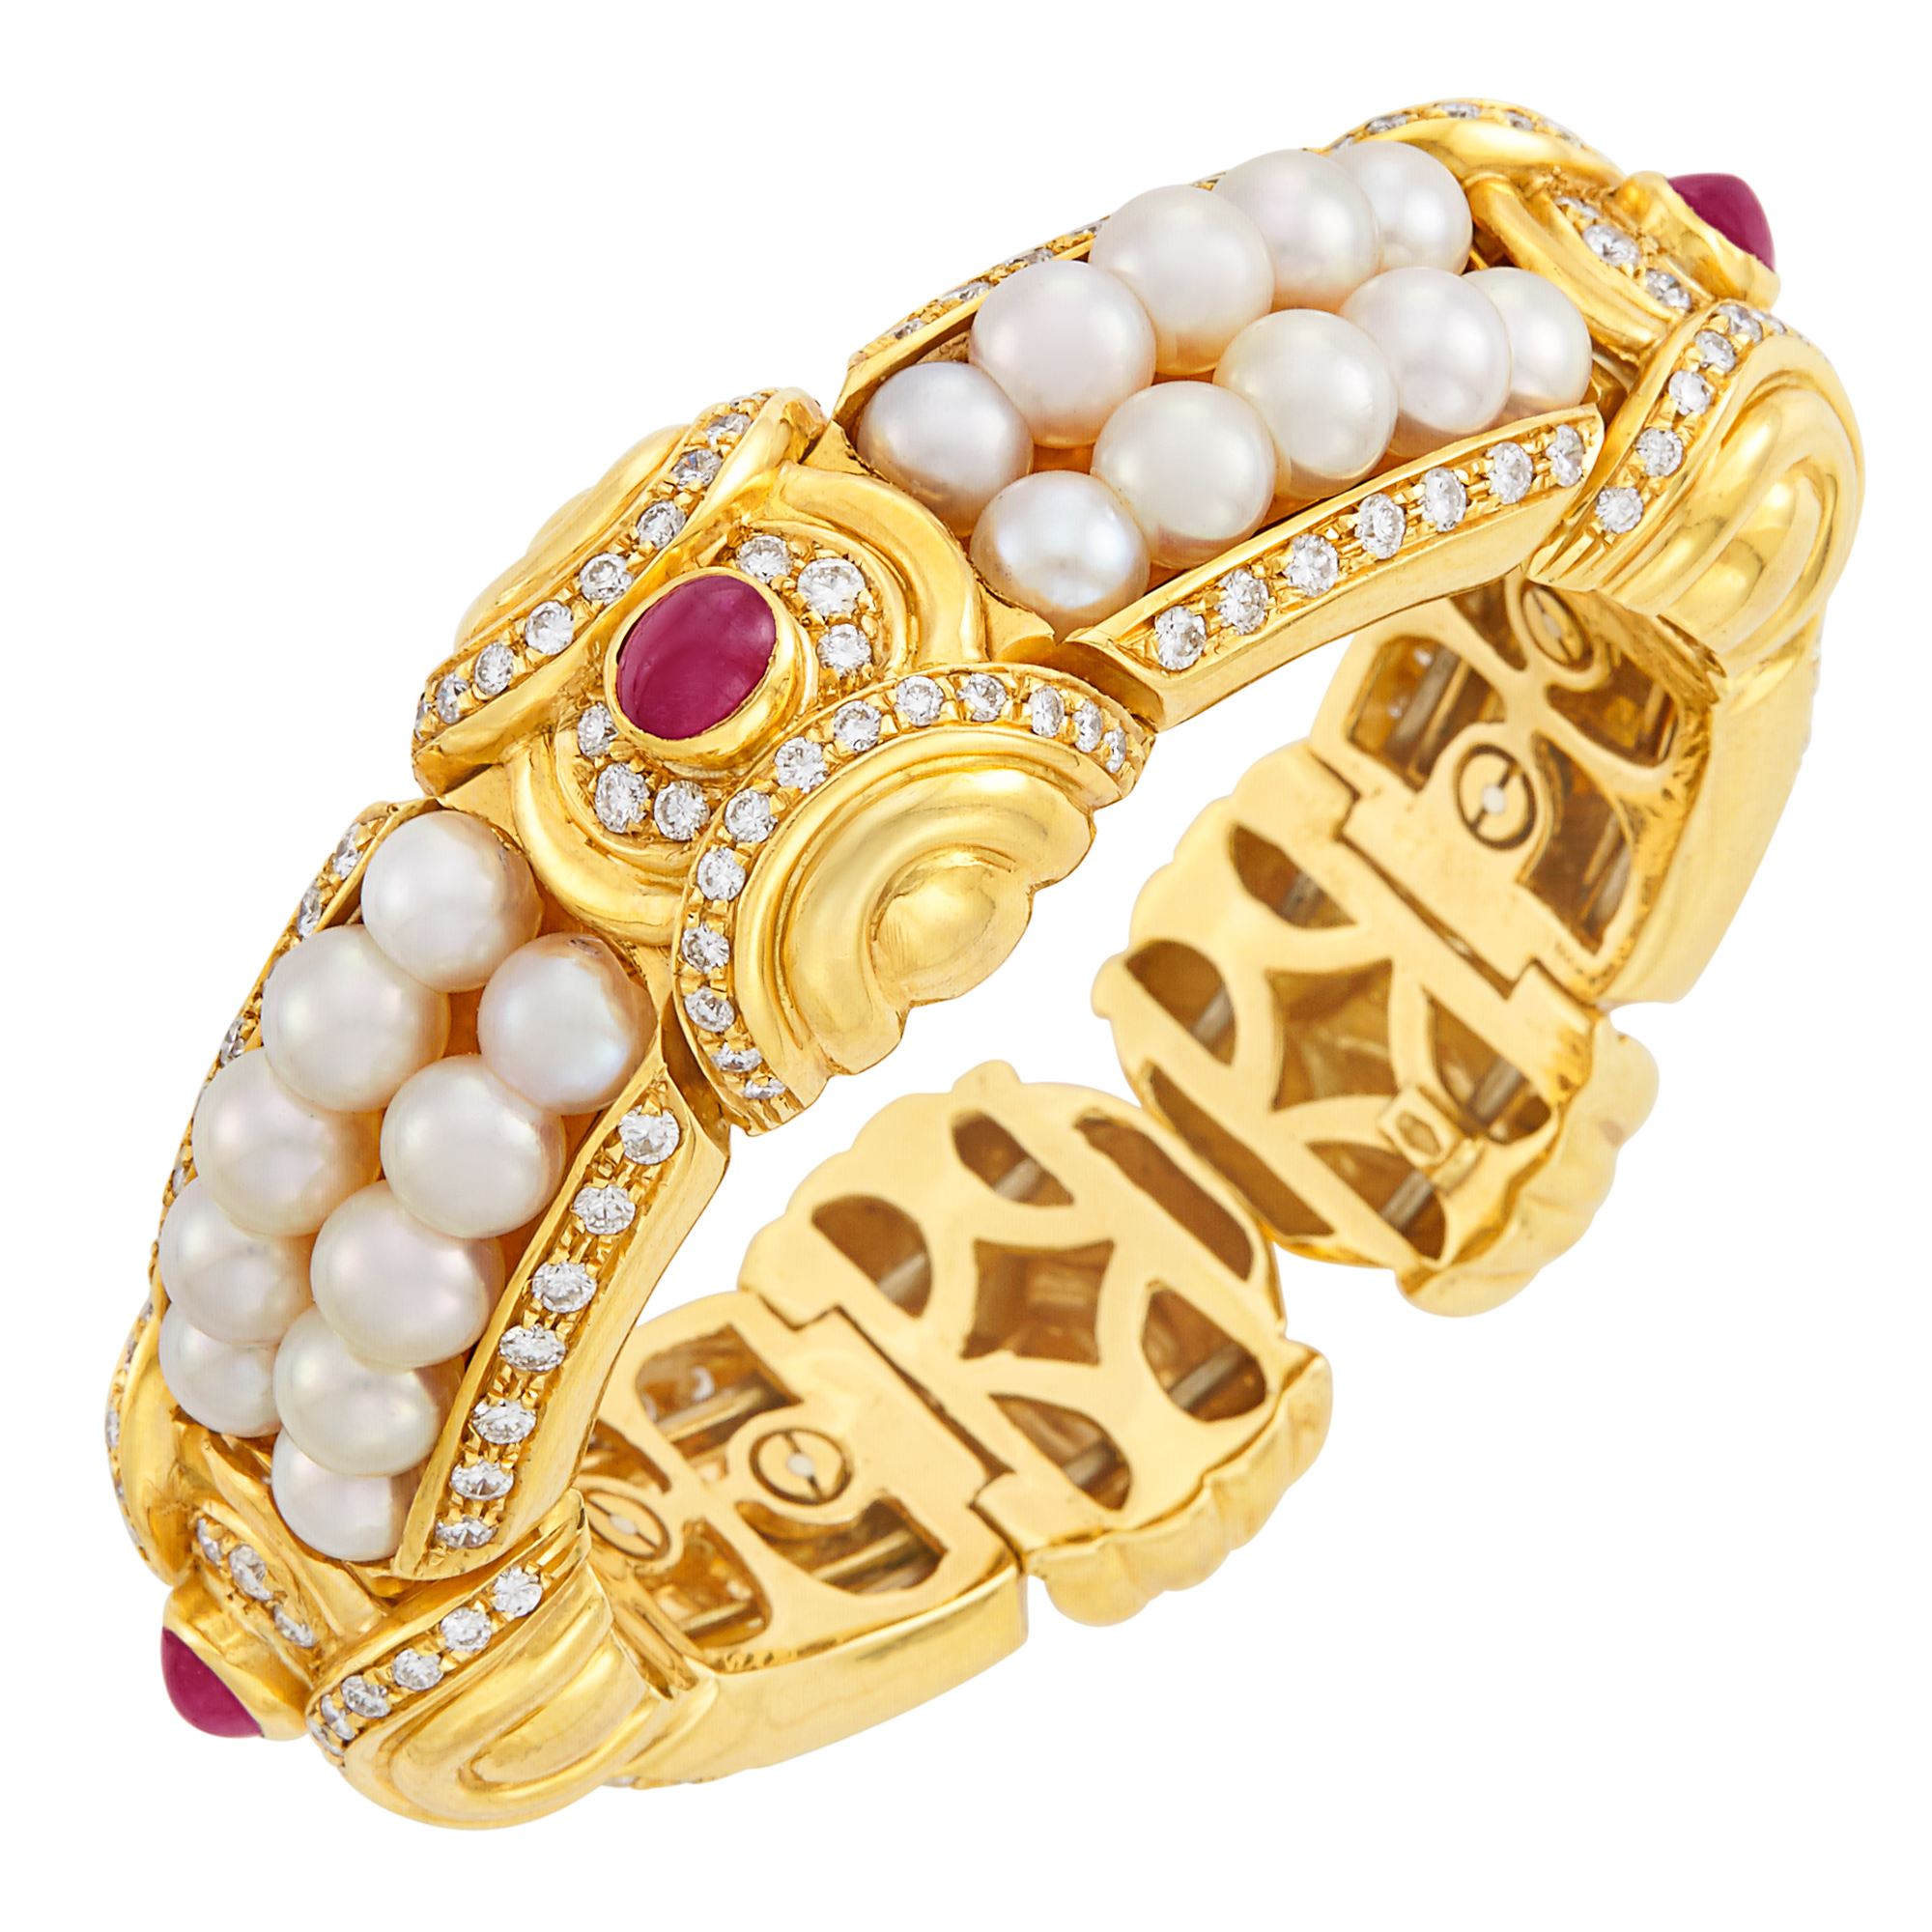 Lot image - Gold, Cultured Pearl, Cabochon Ruby and Diamond Bangle Bracelet